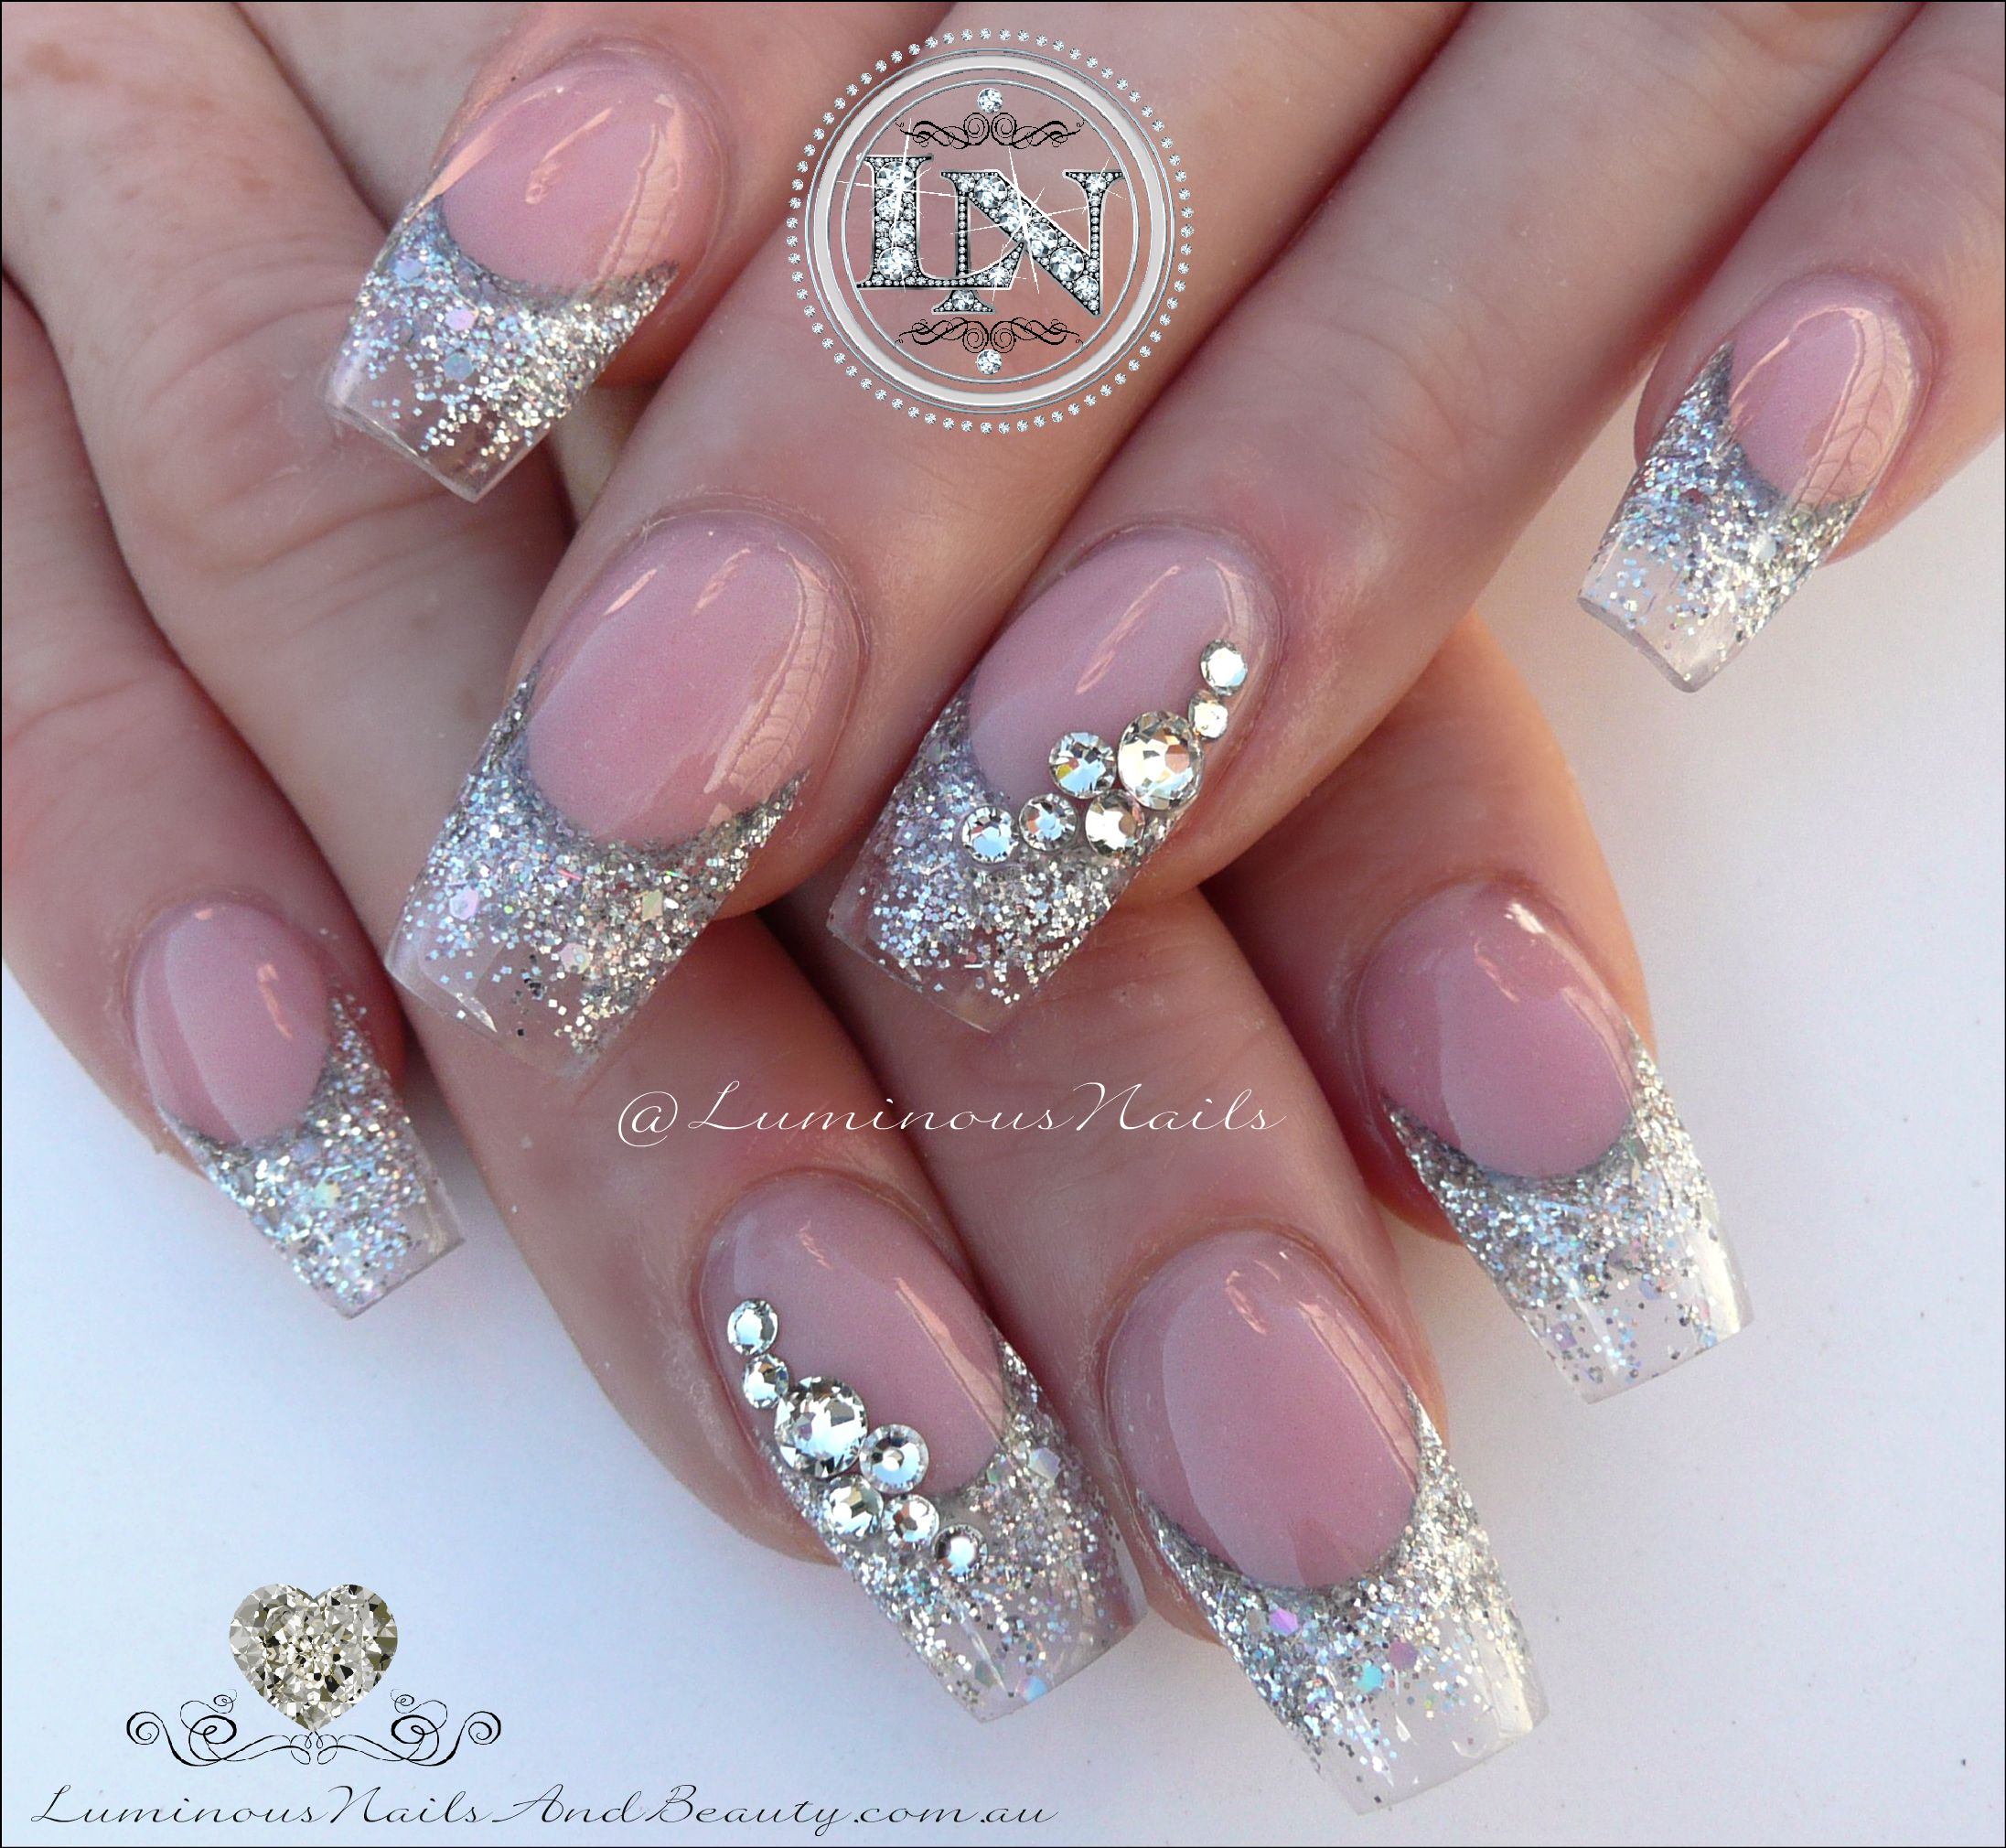 Bridal Nails, Clear/Transparent & Silver with Swarovski Crystals ...